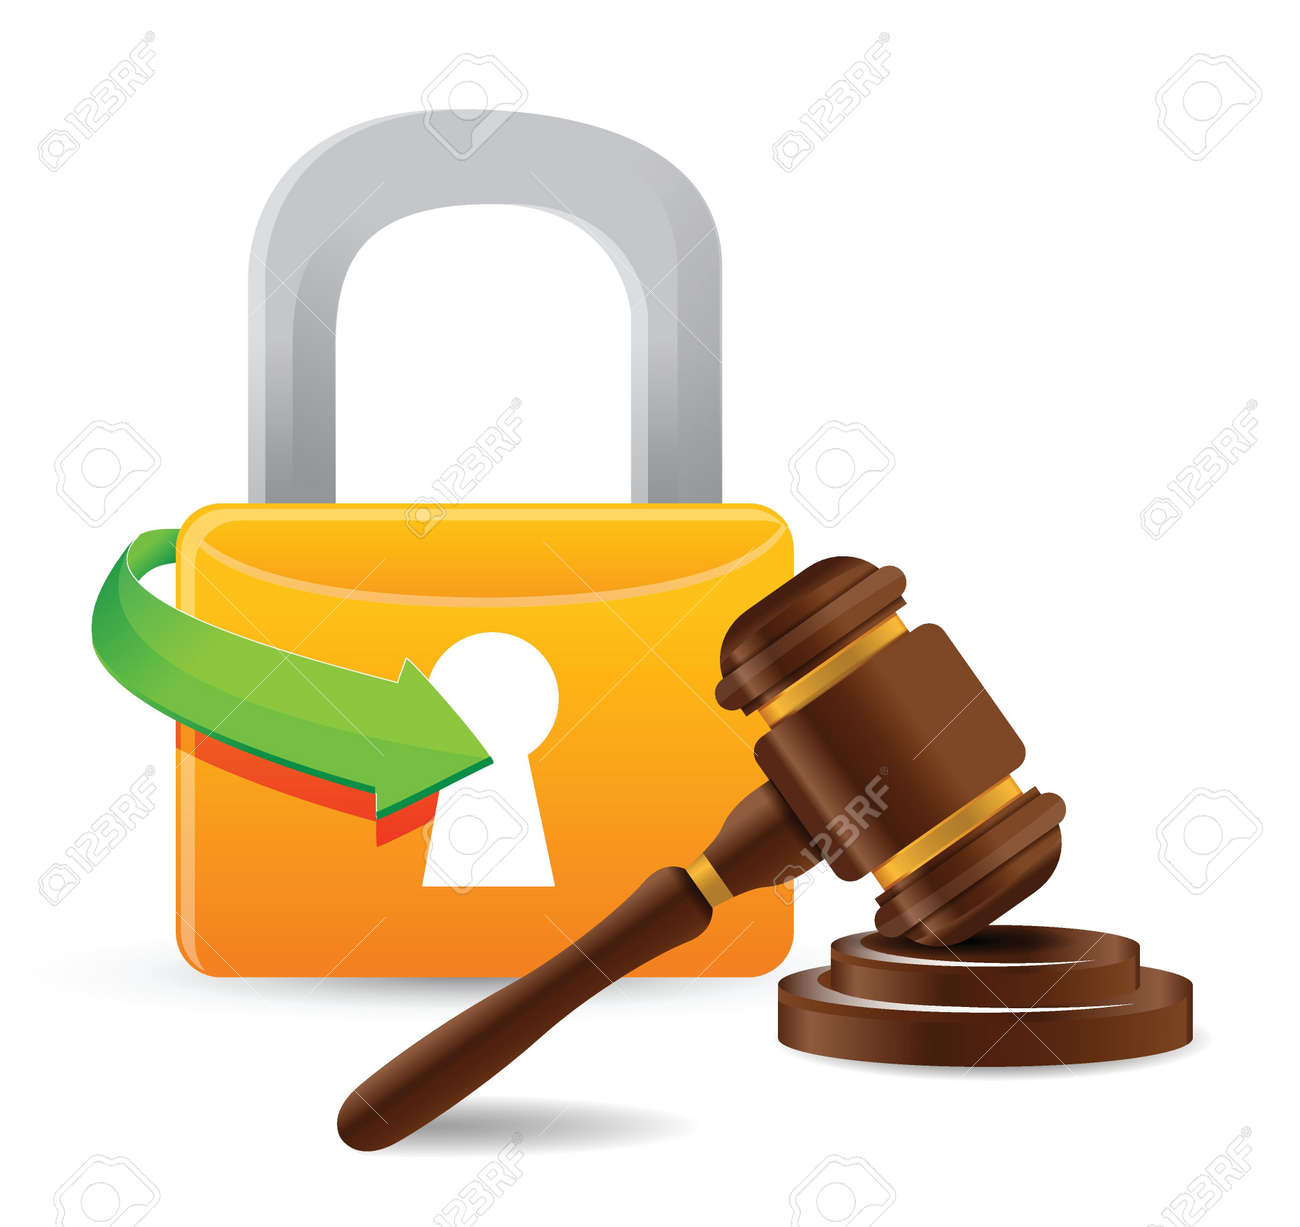 lock and gavel illustration design over a white background Stock Vector - 18593290